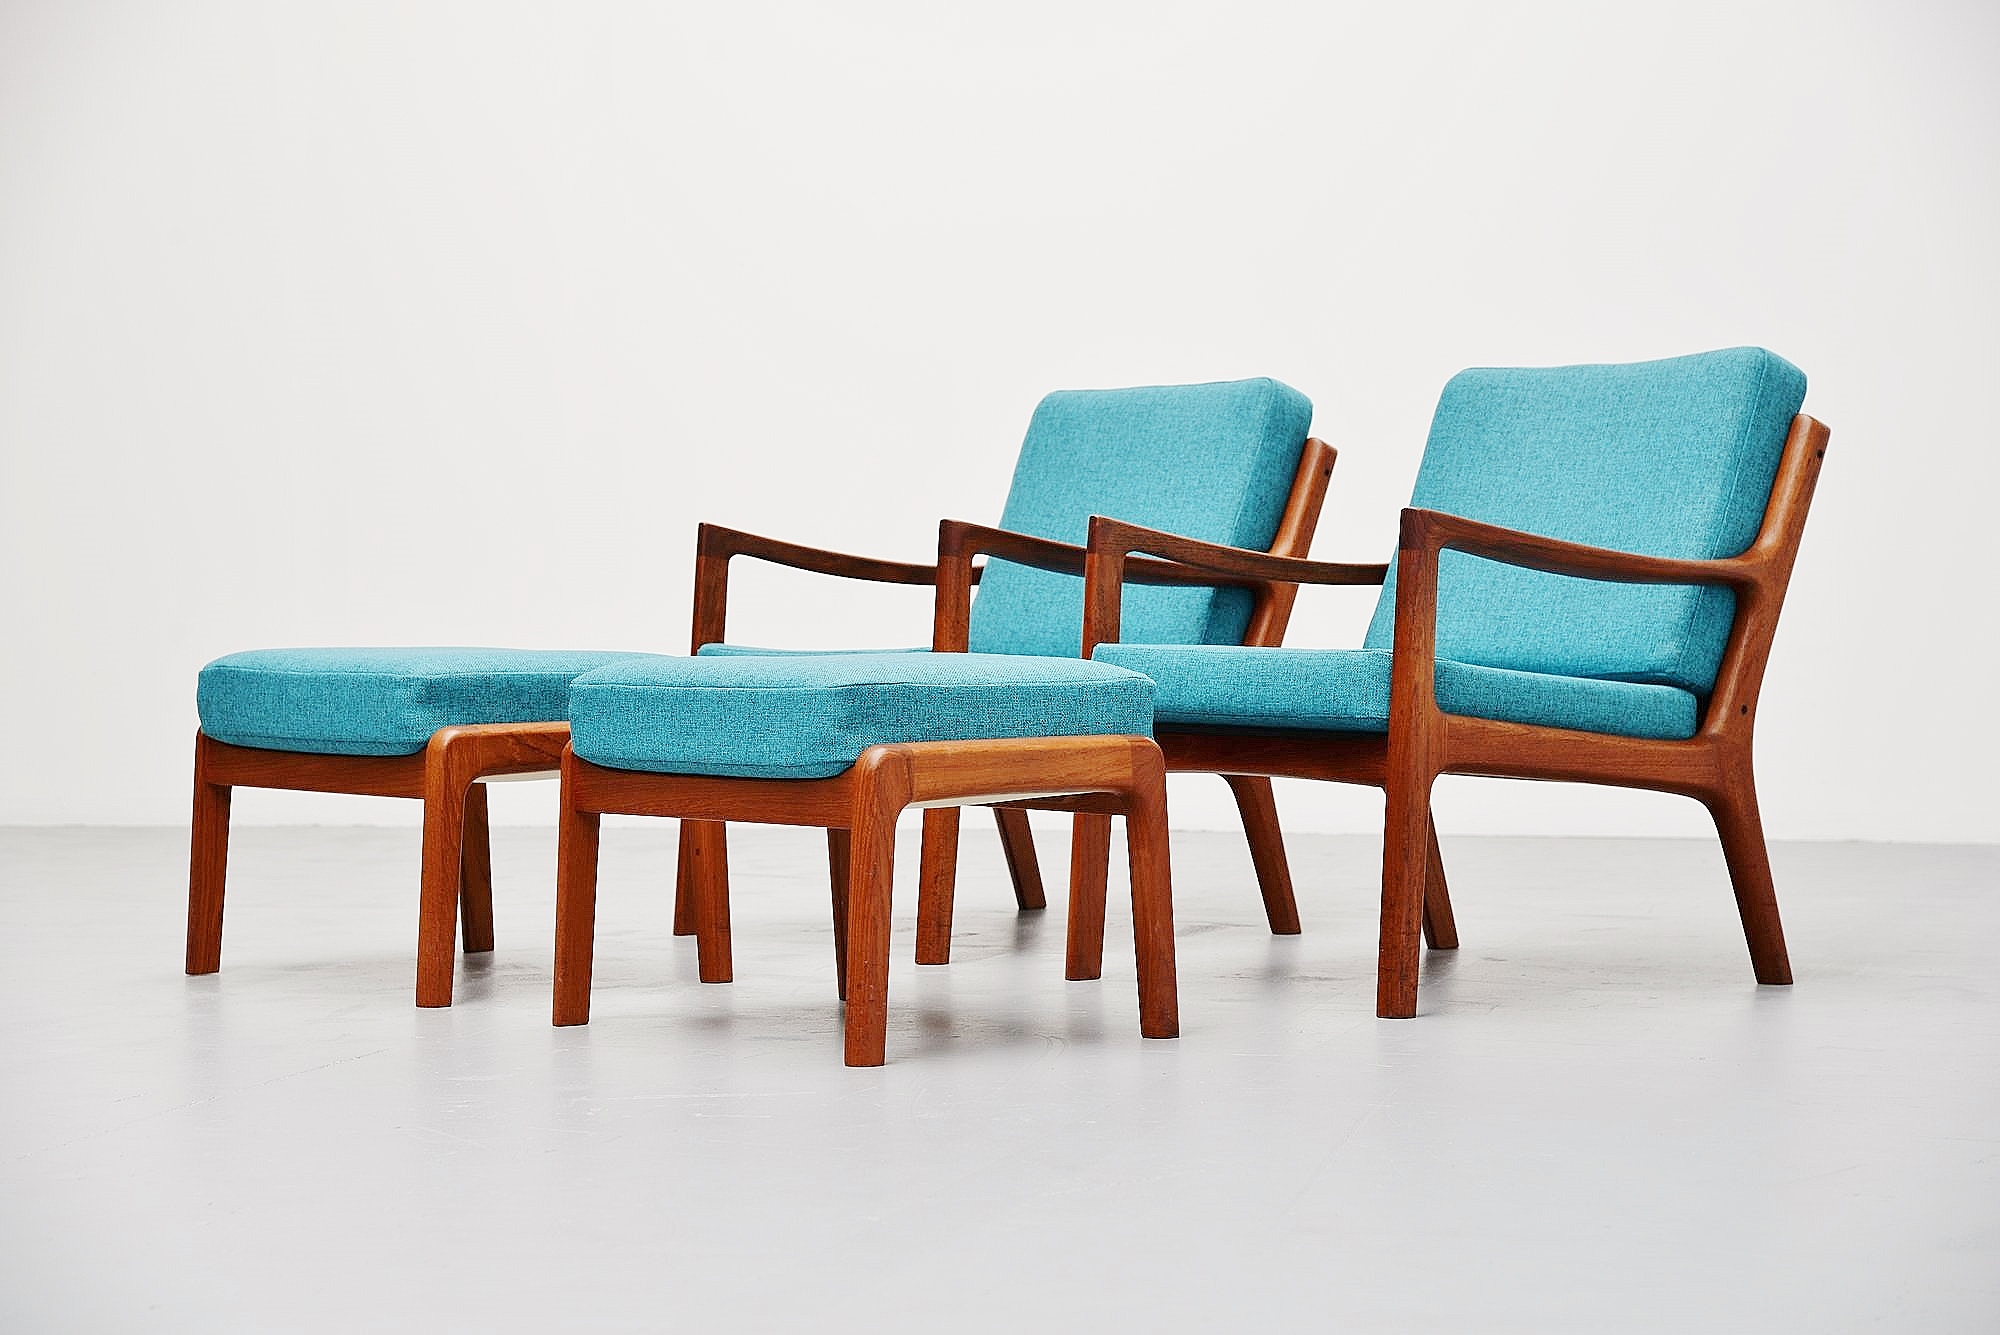 Prime Ole Wanscher Senator Chairs Set France Son 1951 Gmtry Best Dining Table And Chair Ideas Images Gmtryco